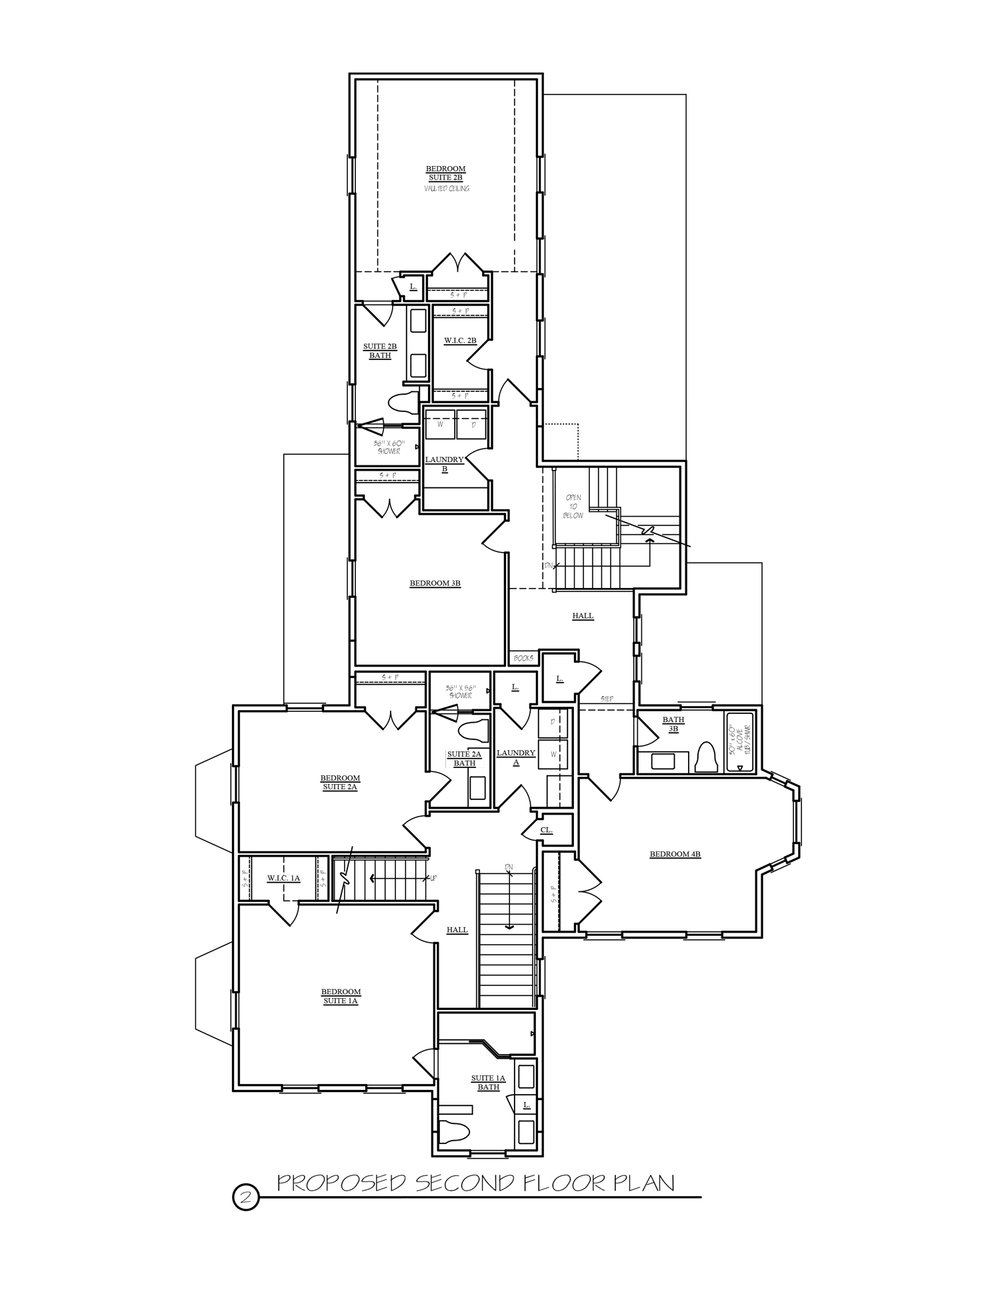 5_Second-Floor-Plan.jpg